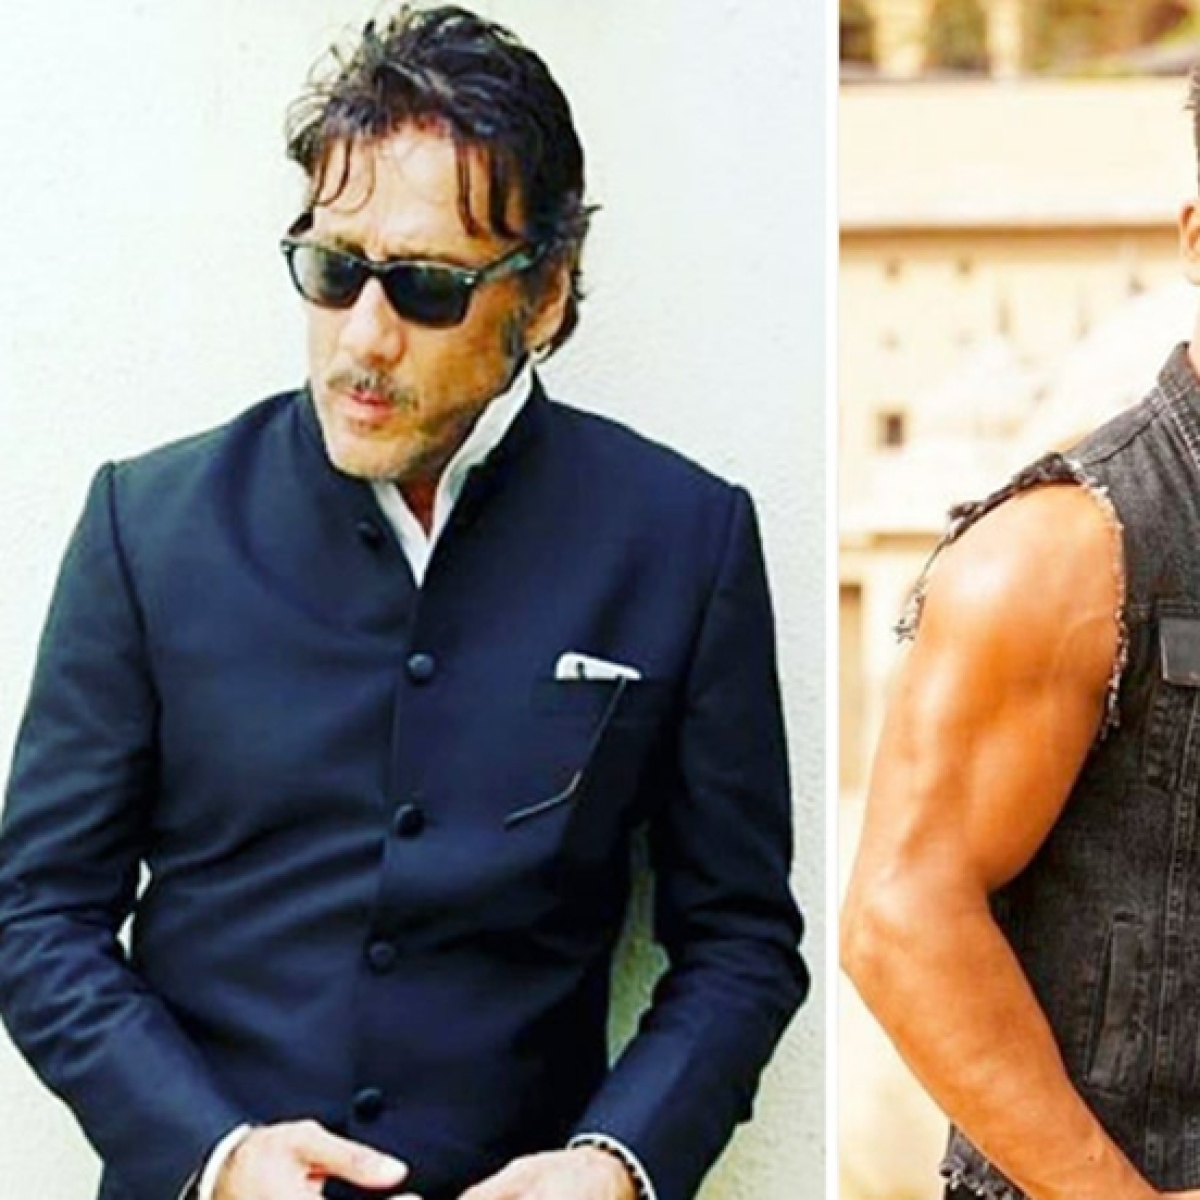 Real to Reel: Jackie Shroff to play Tiger Shroff's father in 'Baaghi 3'